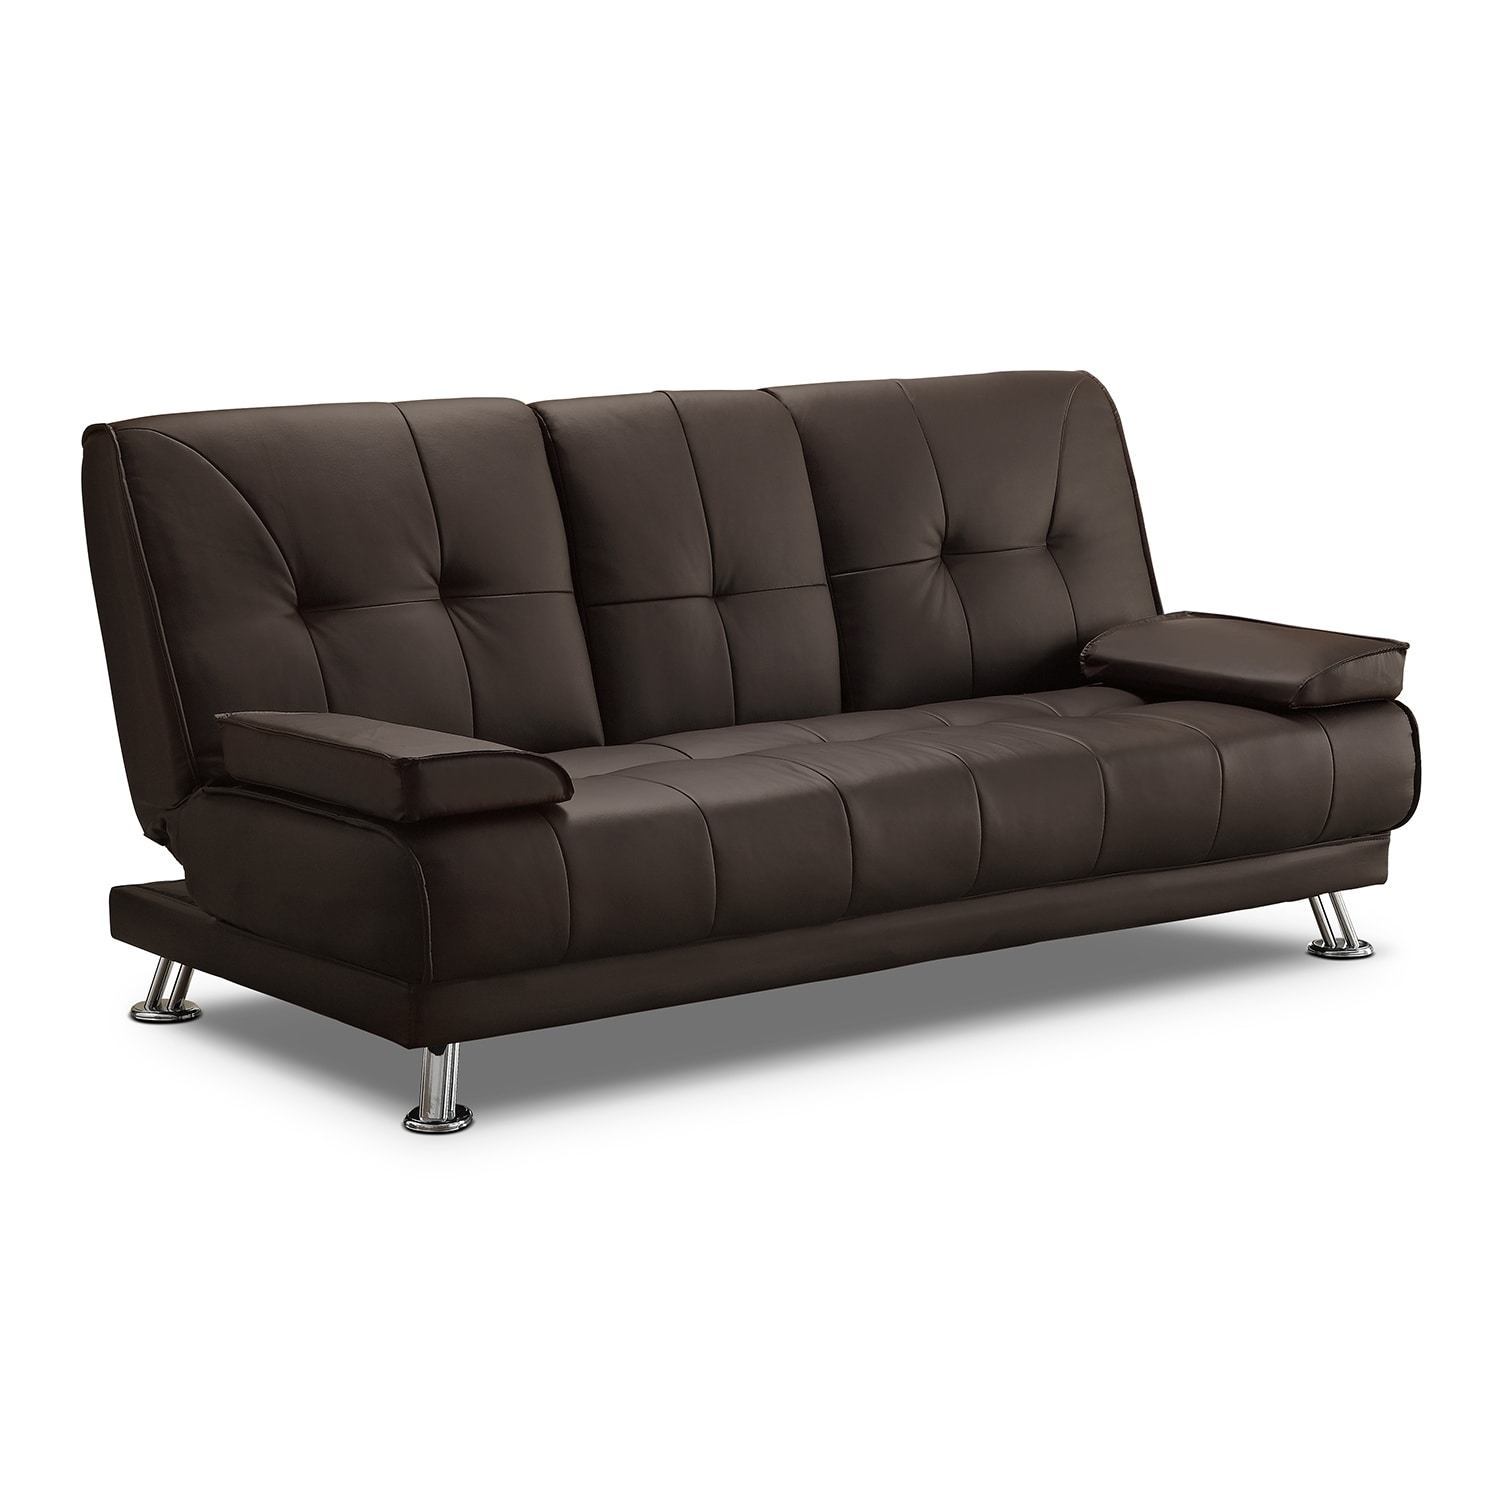 Akira futon sofa bed for Sofa bed futon